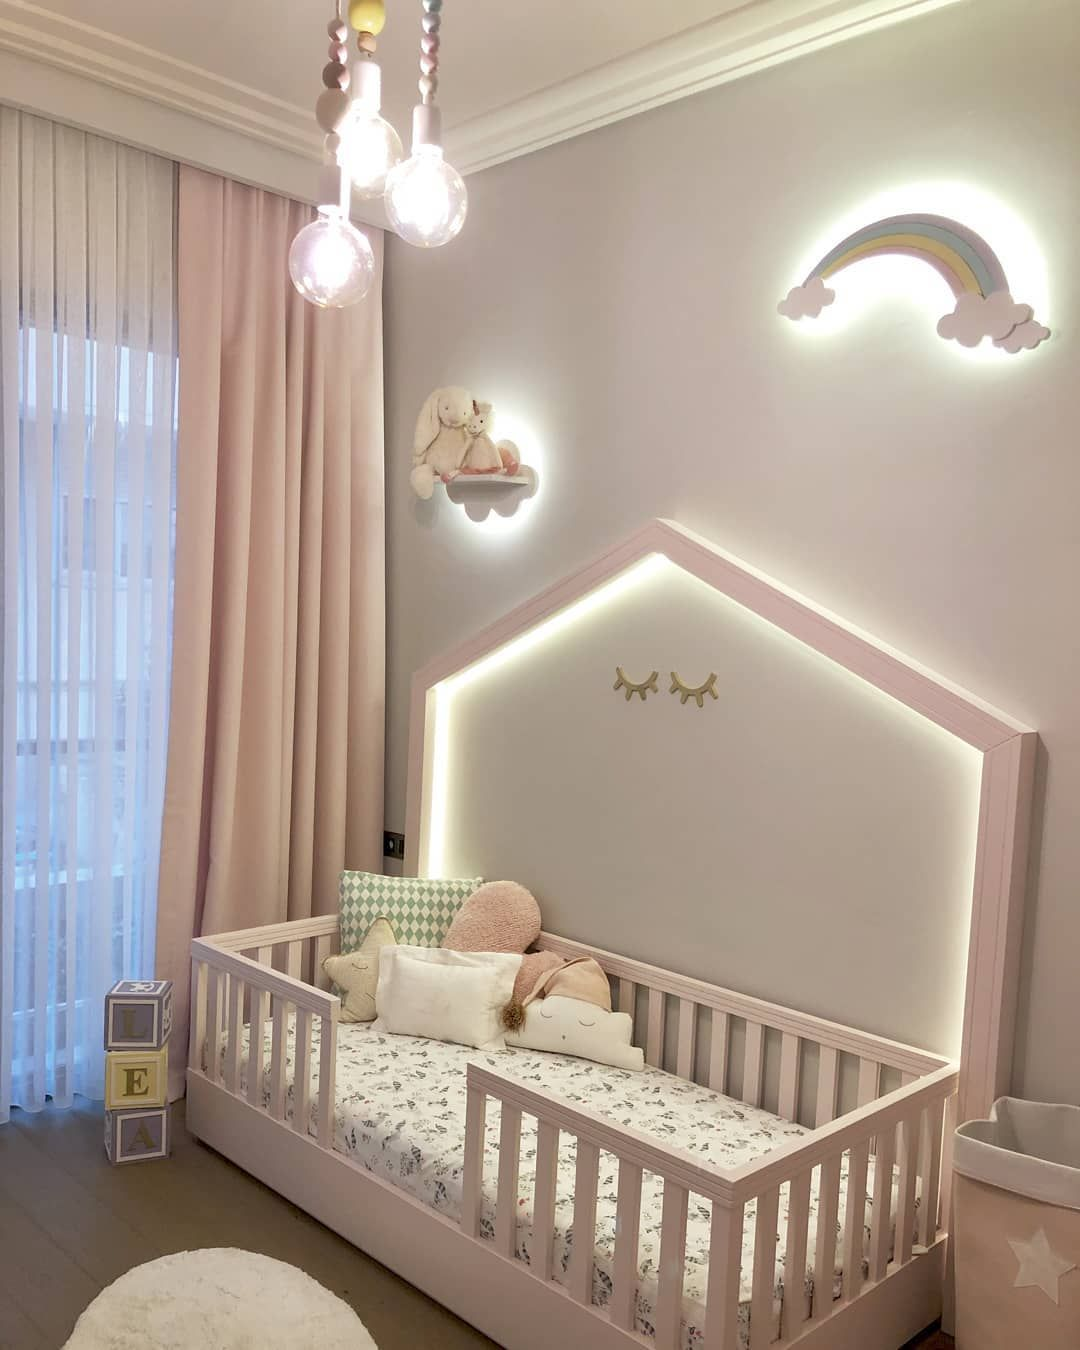 27 Cute Baby Room Ideas Nursery Decor For Boy Girl And Unisex Nursery Baby Room Nursery Room Design Baby Girl Nursery Room